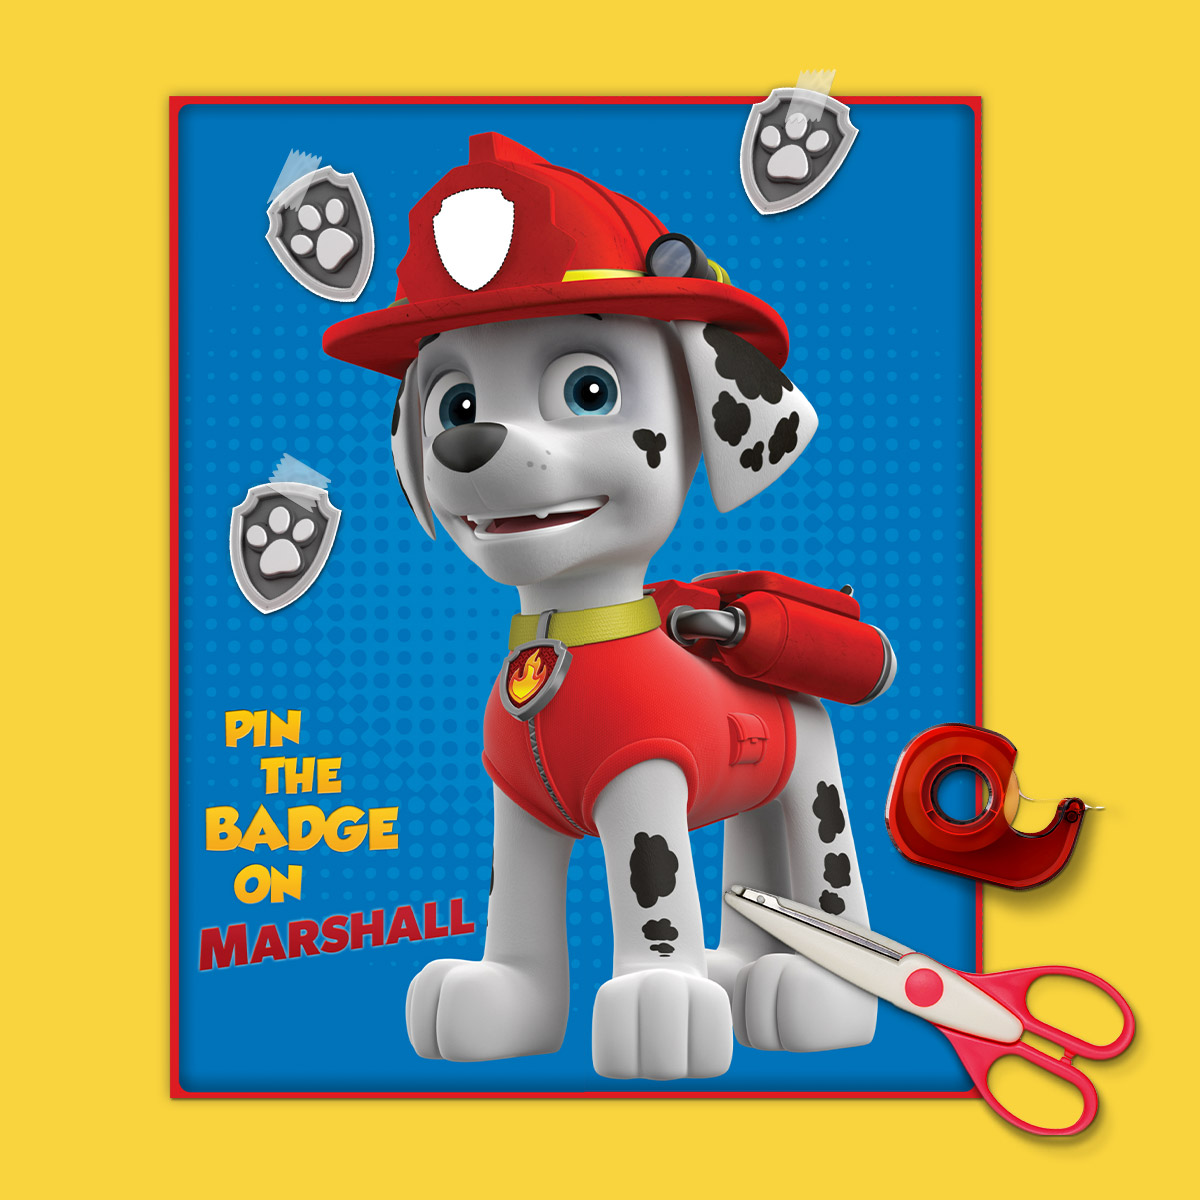 image regarding Free Printable Paw Patrol Badges referred to as Pin the Badge upon Marshall Birthday Get together Sport Nickelodeon